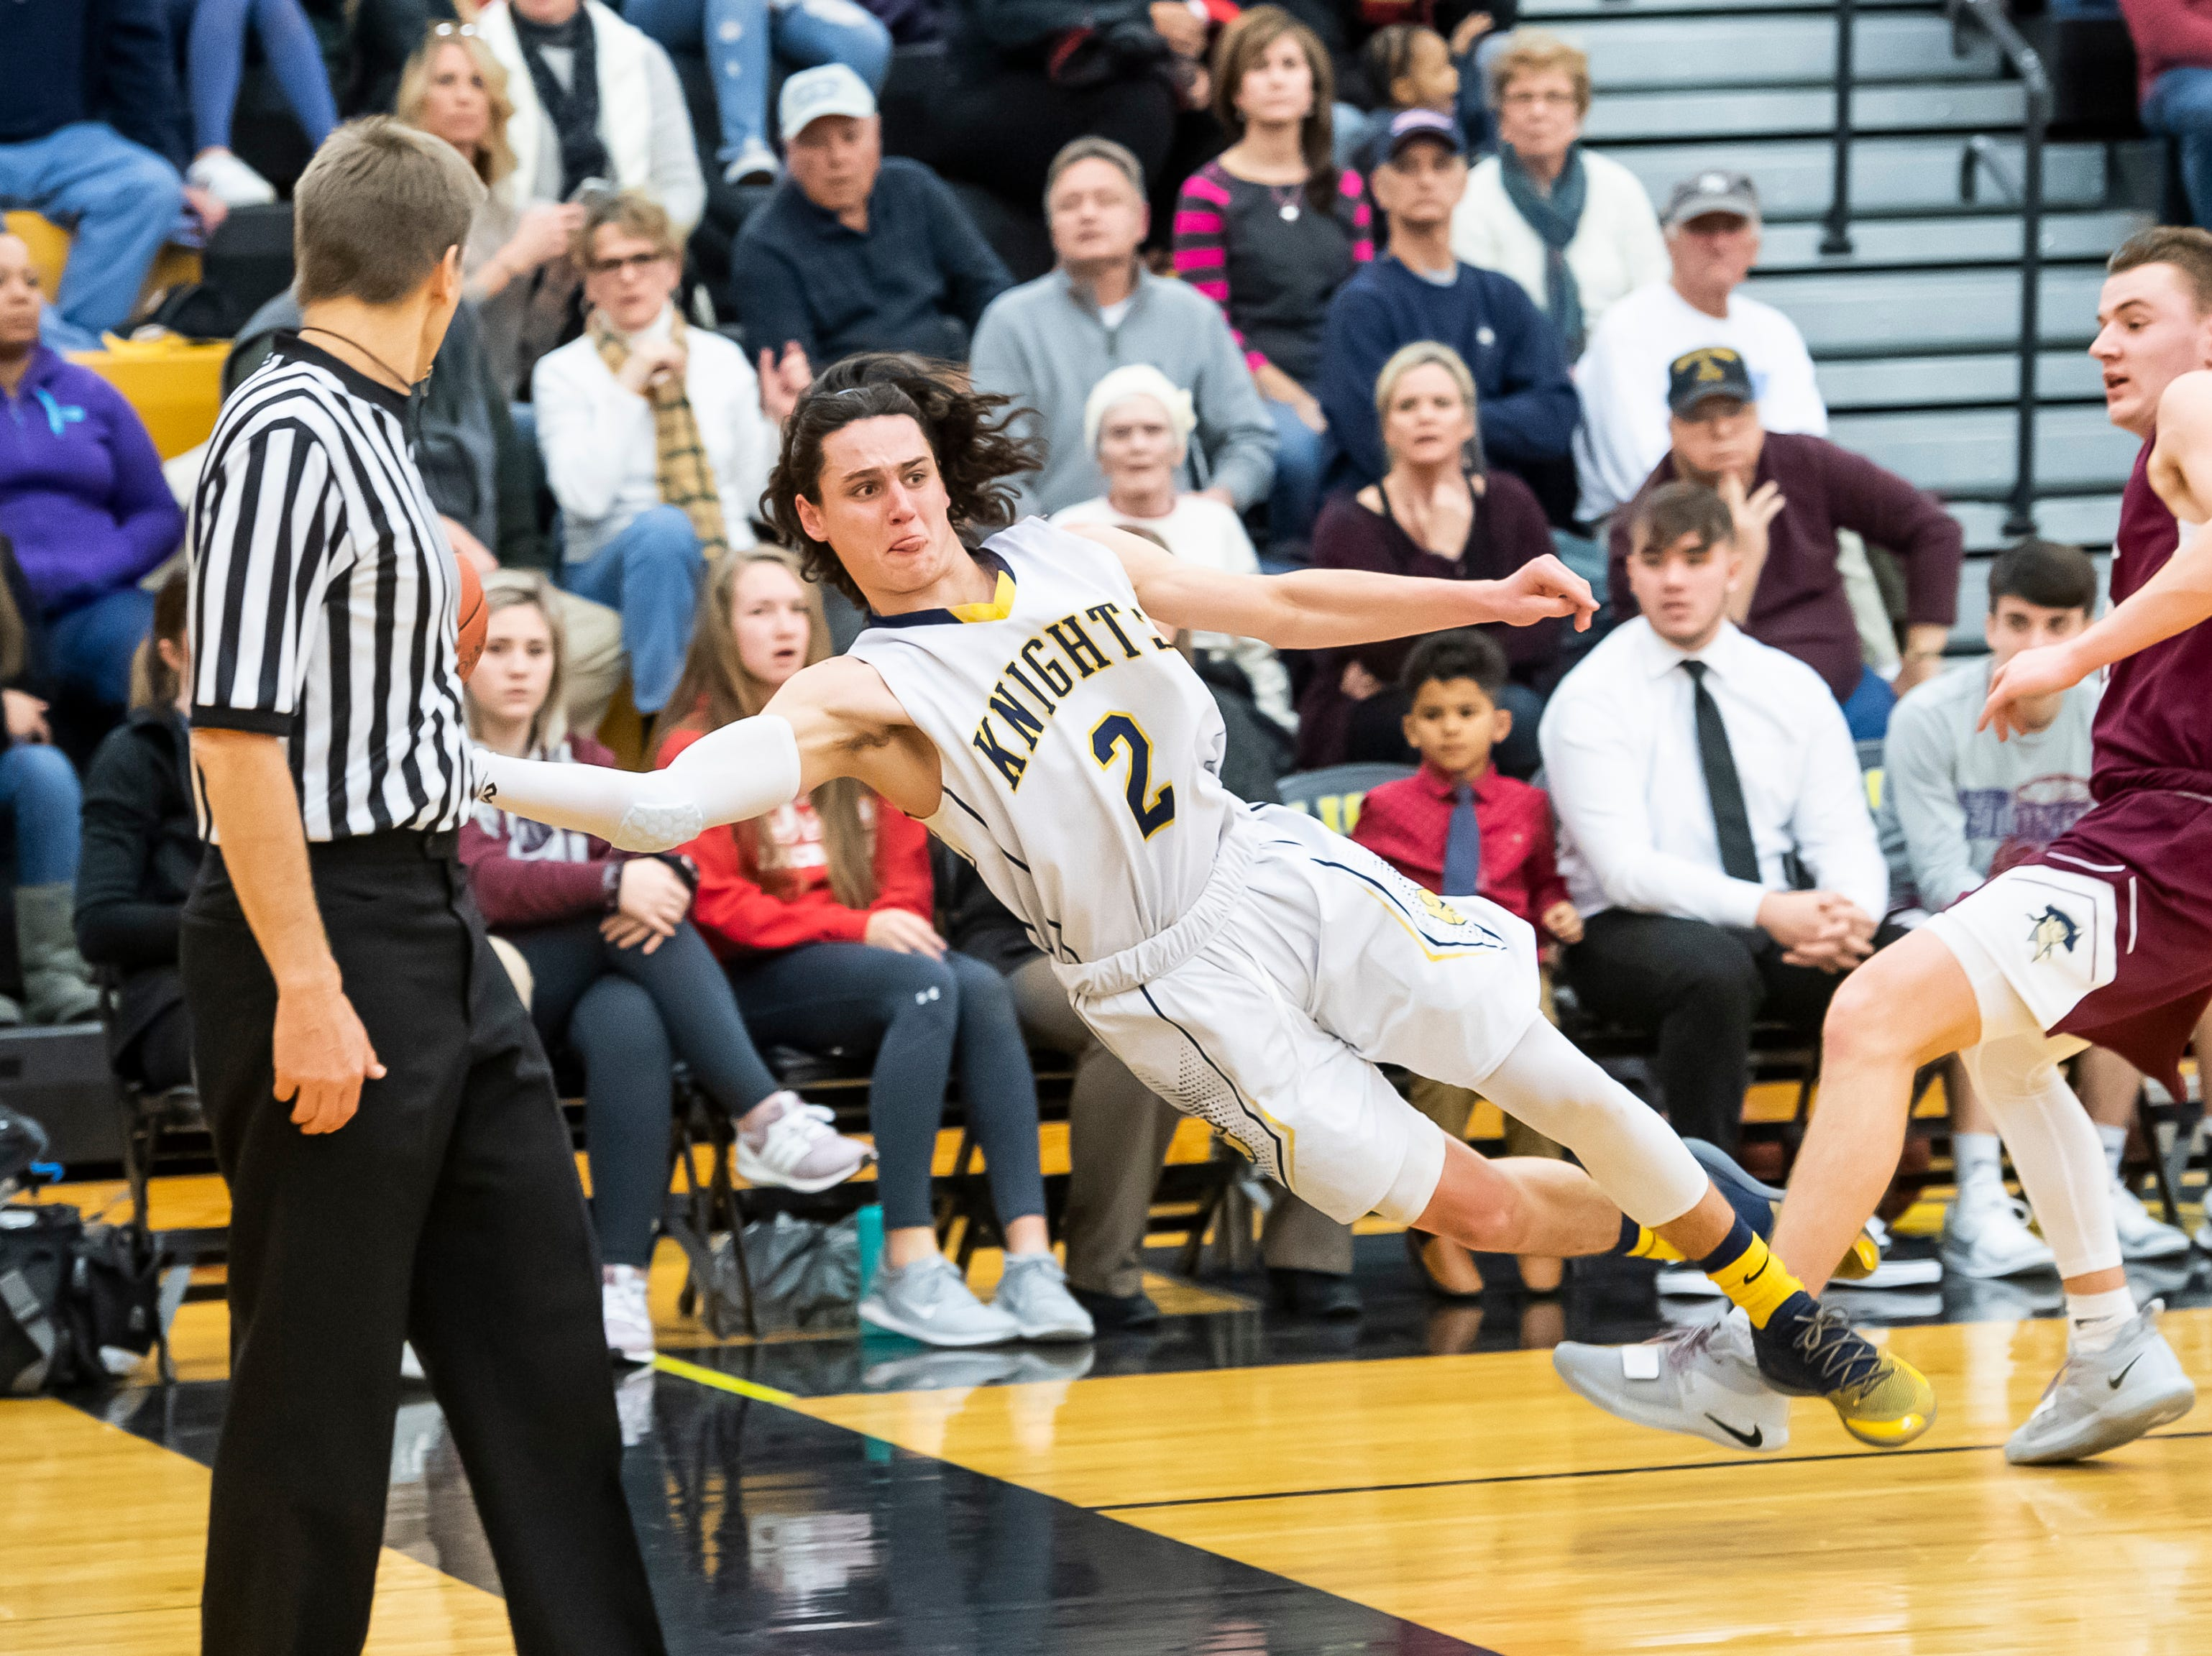 """Eastern York's Bryce Henise saves the ball from going out of bounds during play in a YAIAA quarterfinal game against New Oxford at Red Lion High School Saturday, February 9, 2019. """"If you are not ready, man, he'll punch you in the mouth before you realize it, metaphorically speaking,"""" New Oxford head coach Sean Bair said of Henise."""